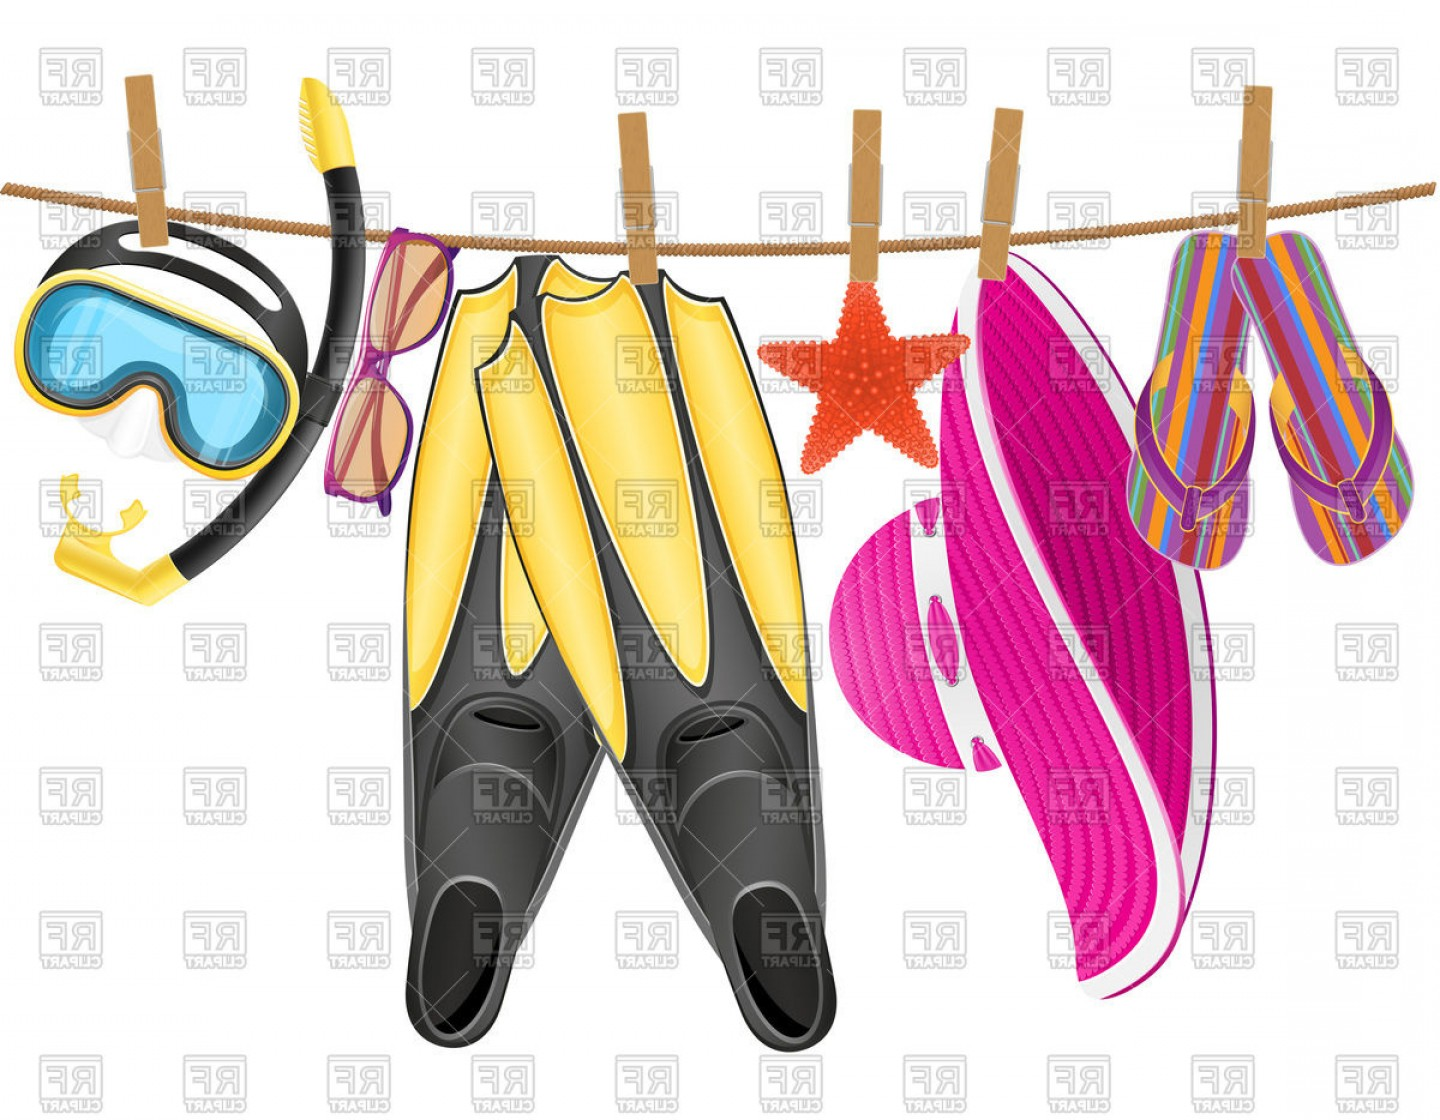 Beach accessories clipart svg freeuse library Beach Accessories Hanging On Rope With Clothespin Vector Clipart ... svg freeuse library